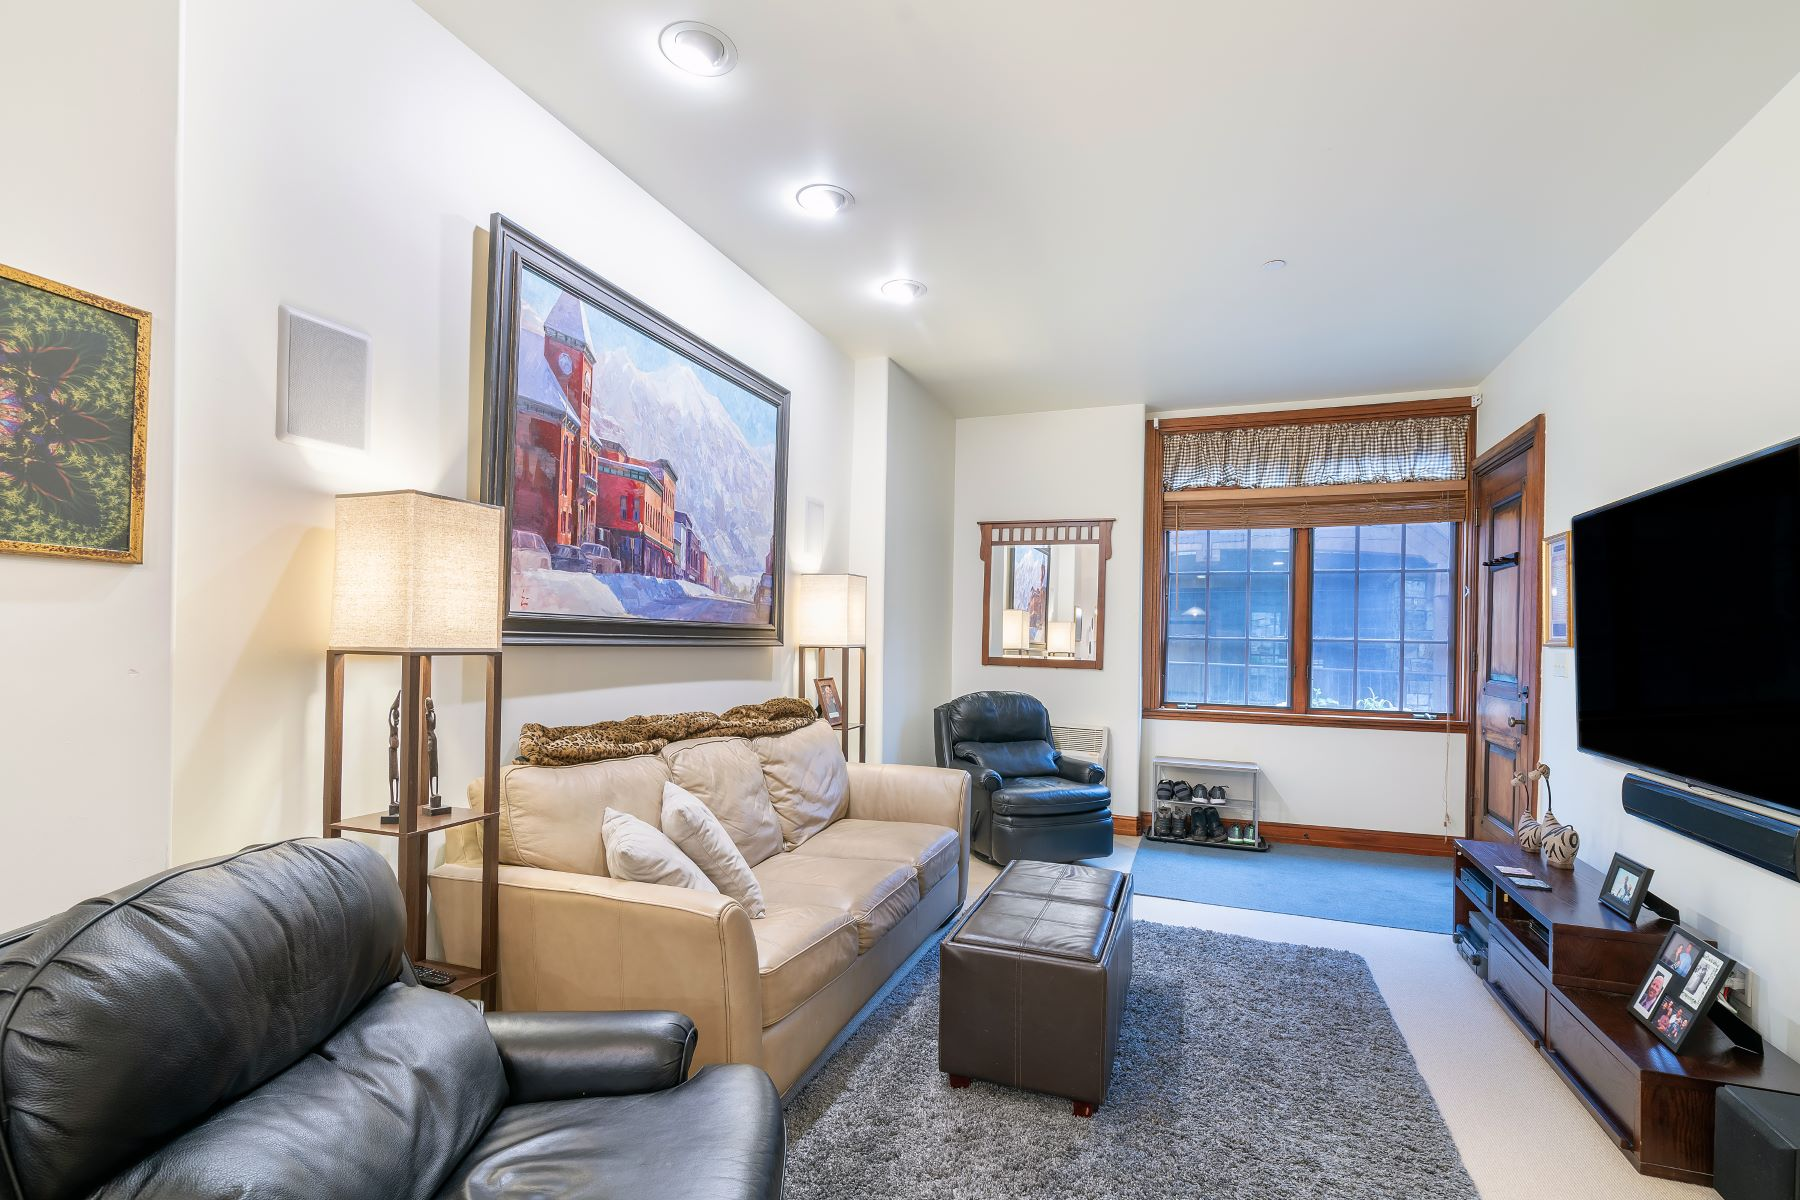 Condominiums for Sale at See Forever E3 117 Country Club Drive E3, Mountain Village, Colorado 81435 United States